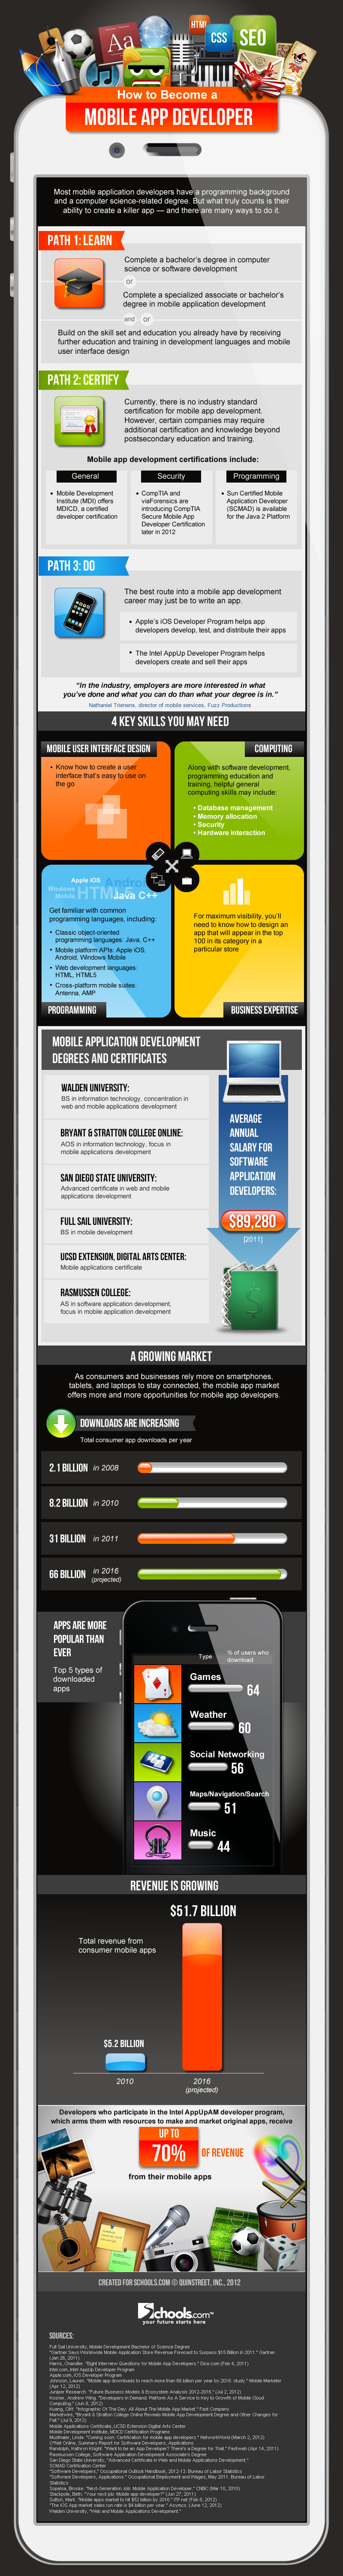 Infographic: How to Become a Mobile App Developer